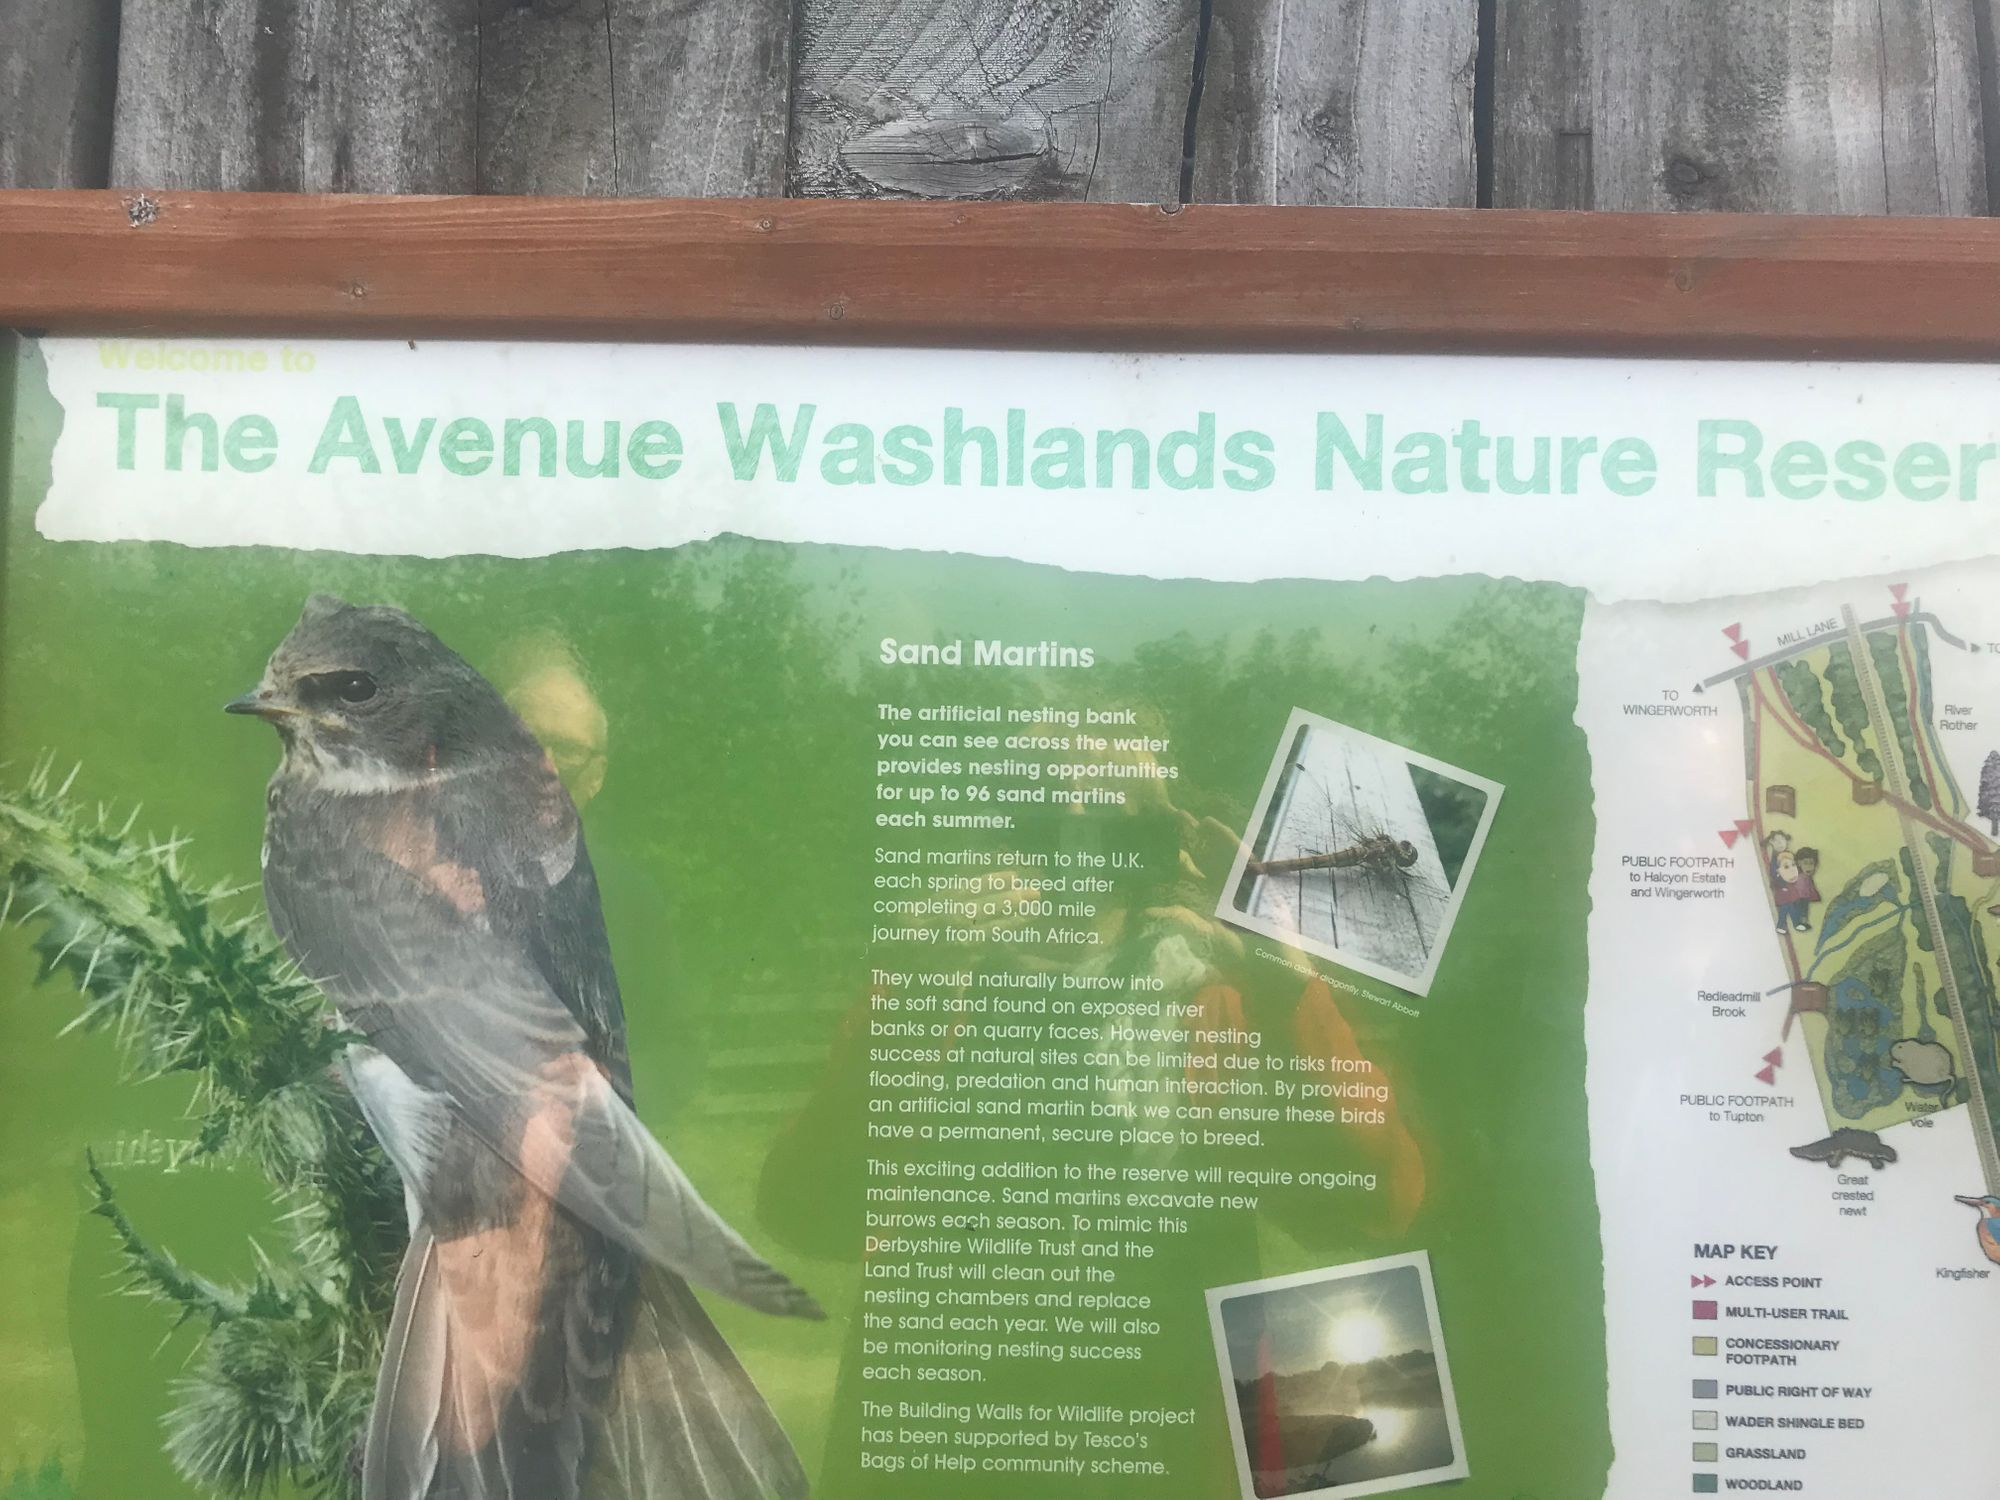 JOIN US - Family Fun Day 30th July - The Avenue Washlands Nature Reserve, Chesterfield